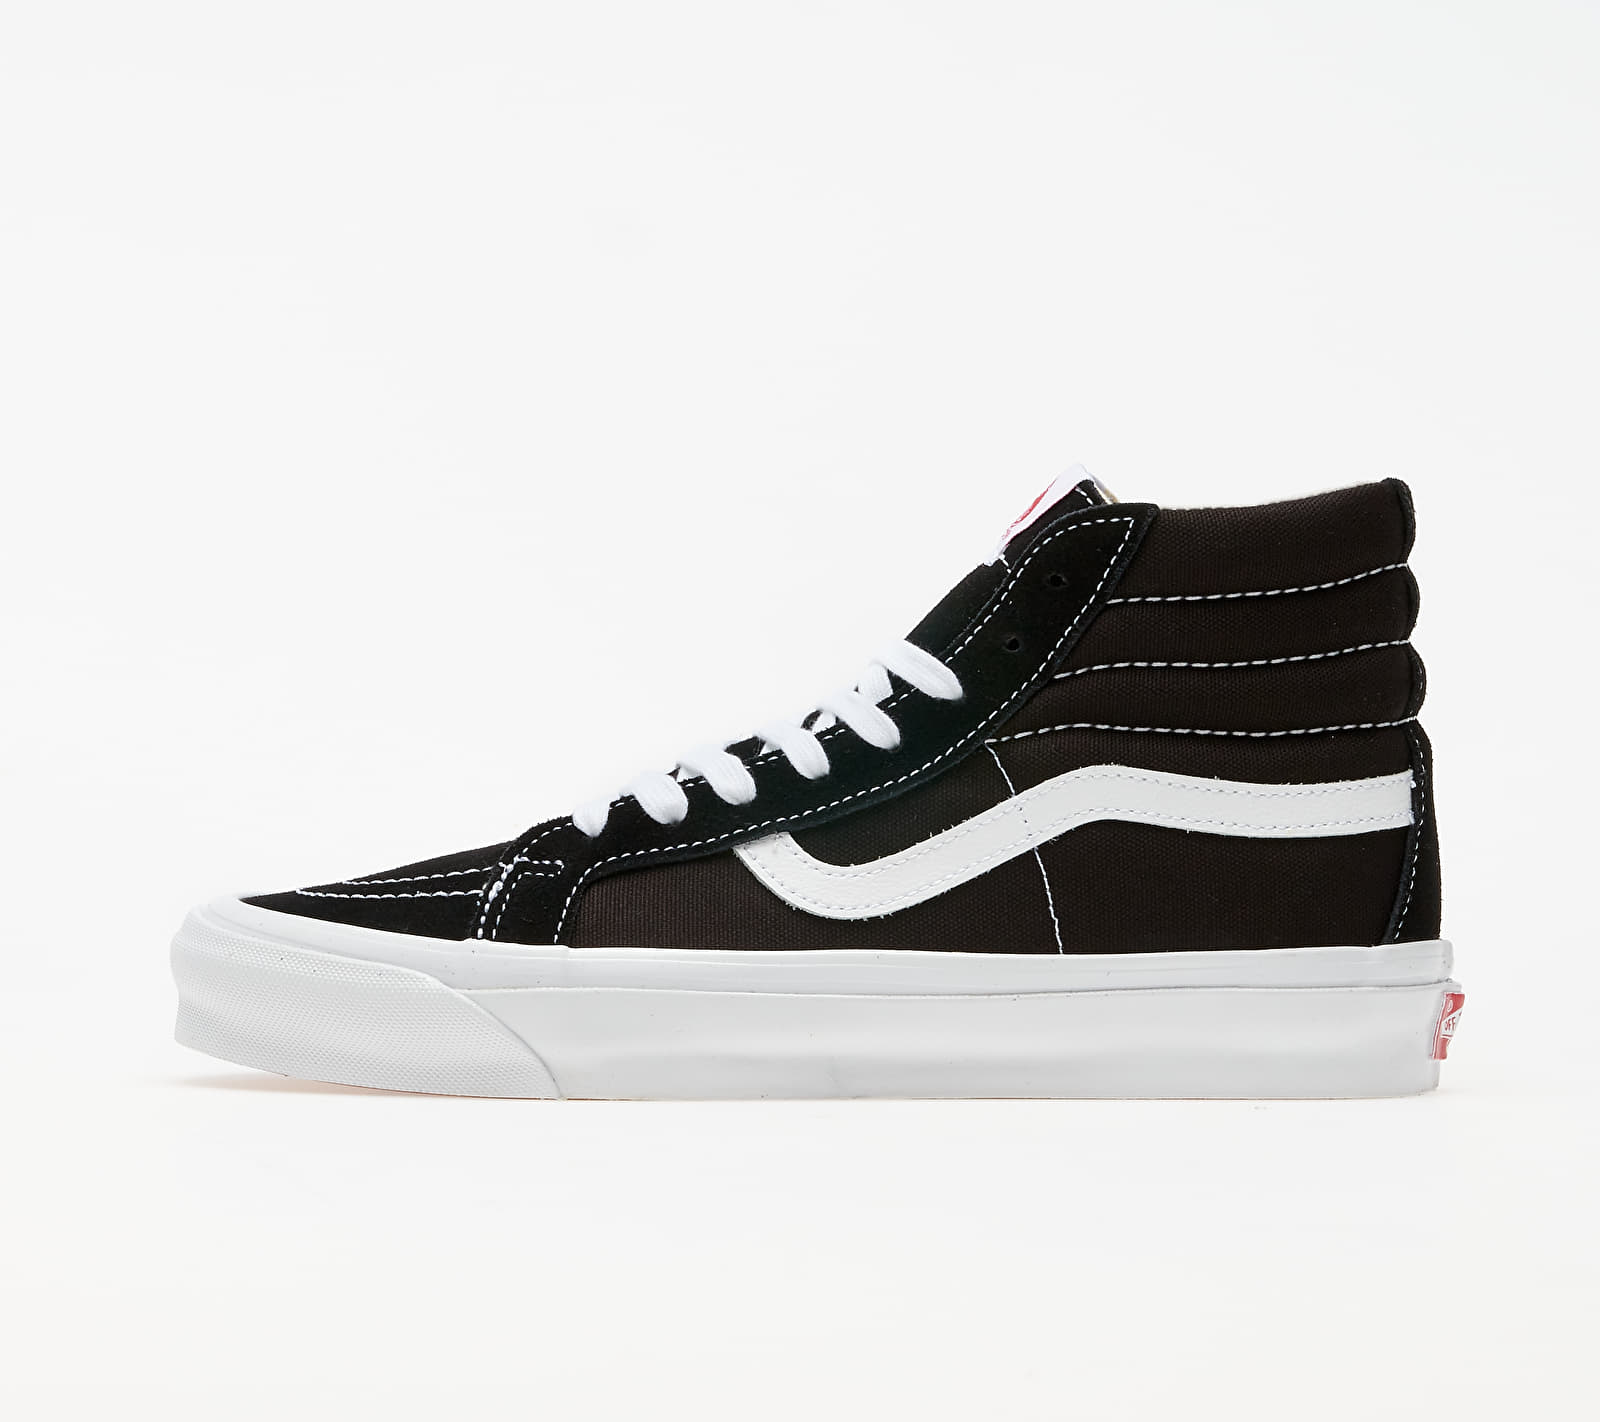 Vans Vault OG Sk8-Hi LX (Suede/ Canvas) Black/ True White EUR 42.5